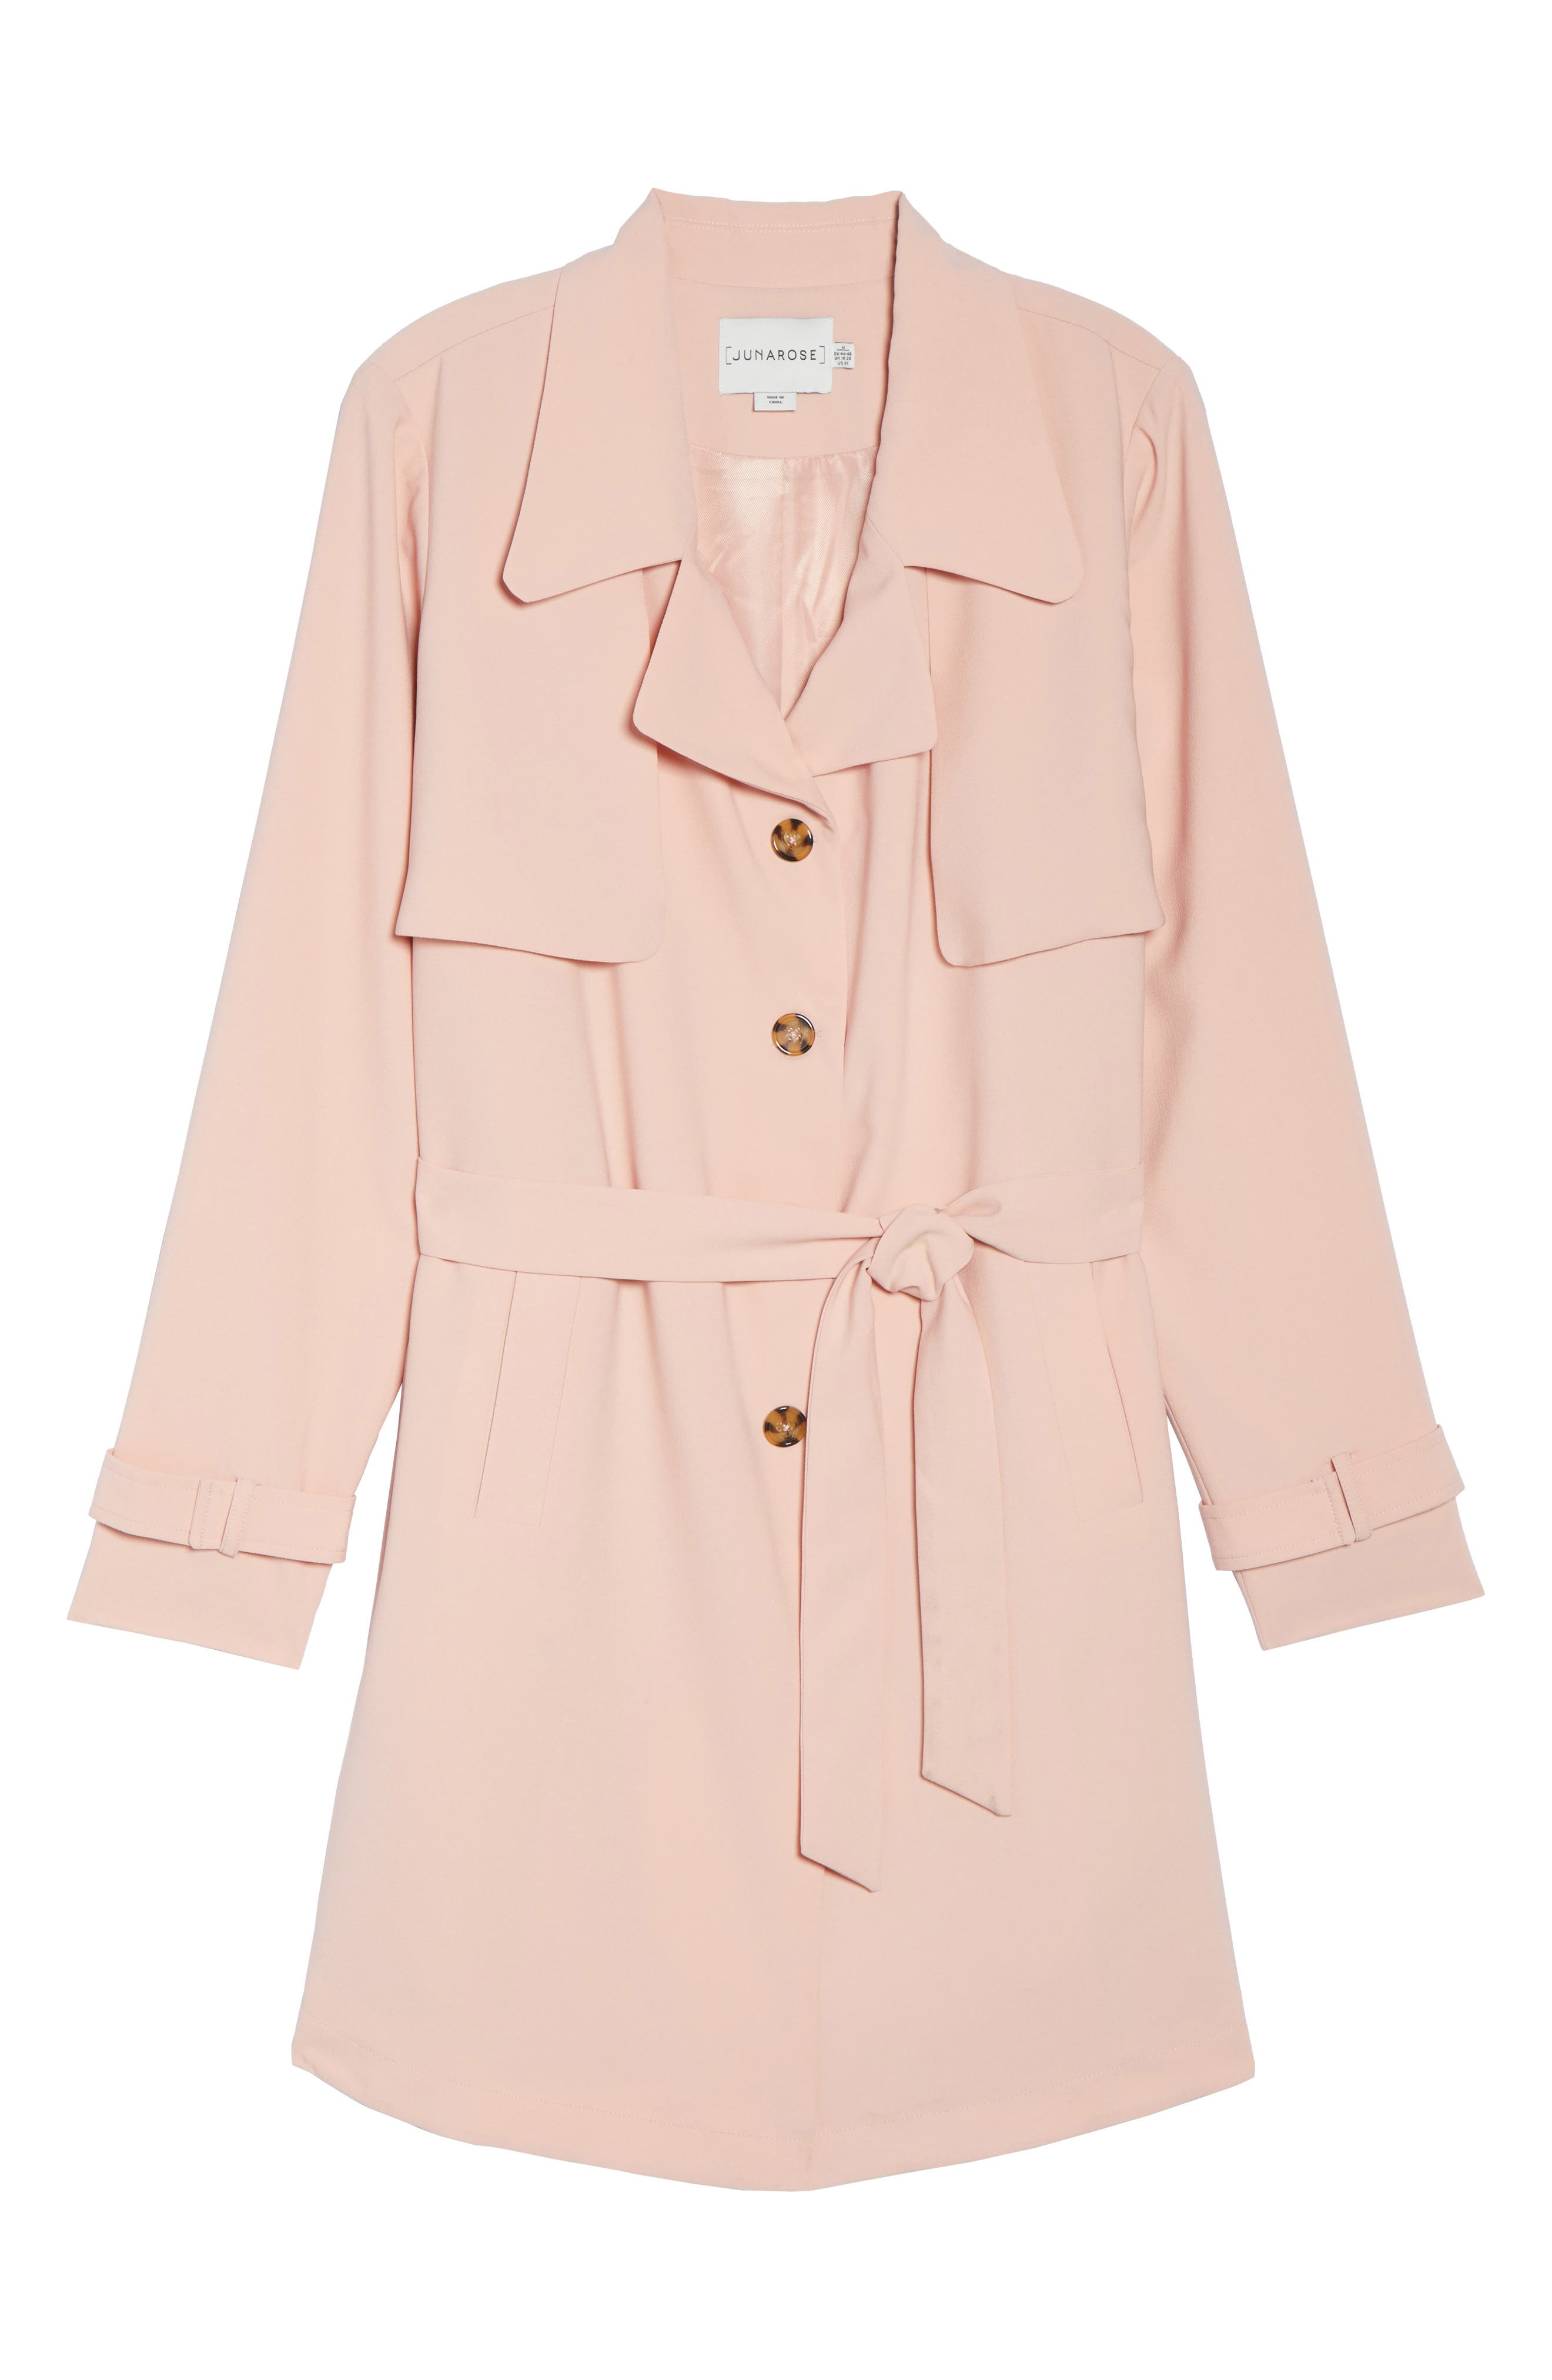 Marina Trench Coat,                             Alternate thumbnail 6, color,                             Coral Cloud